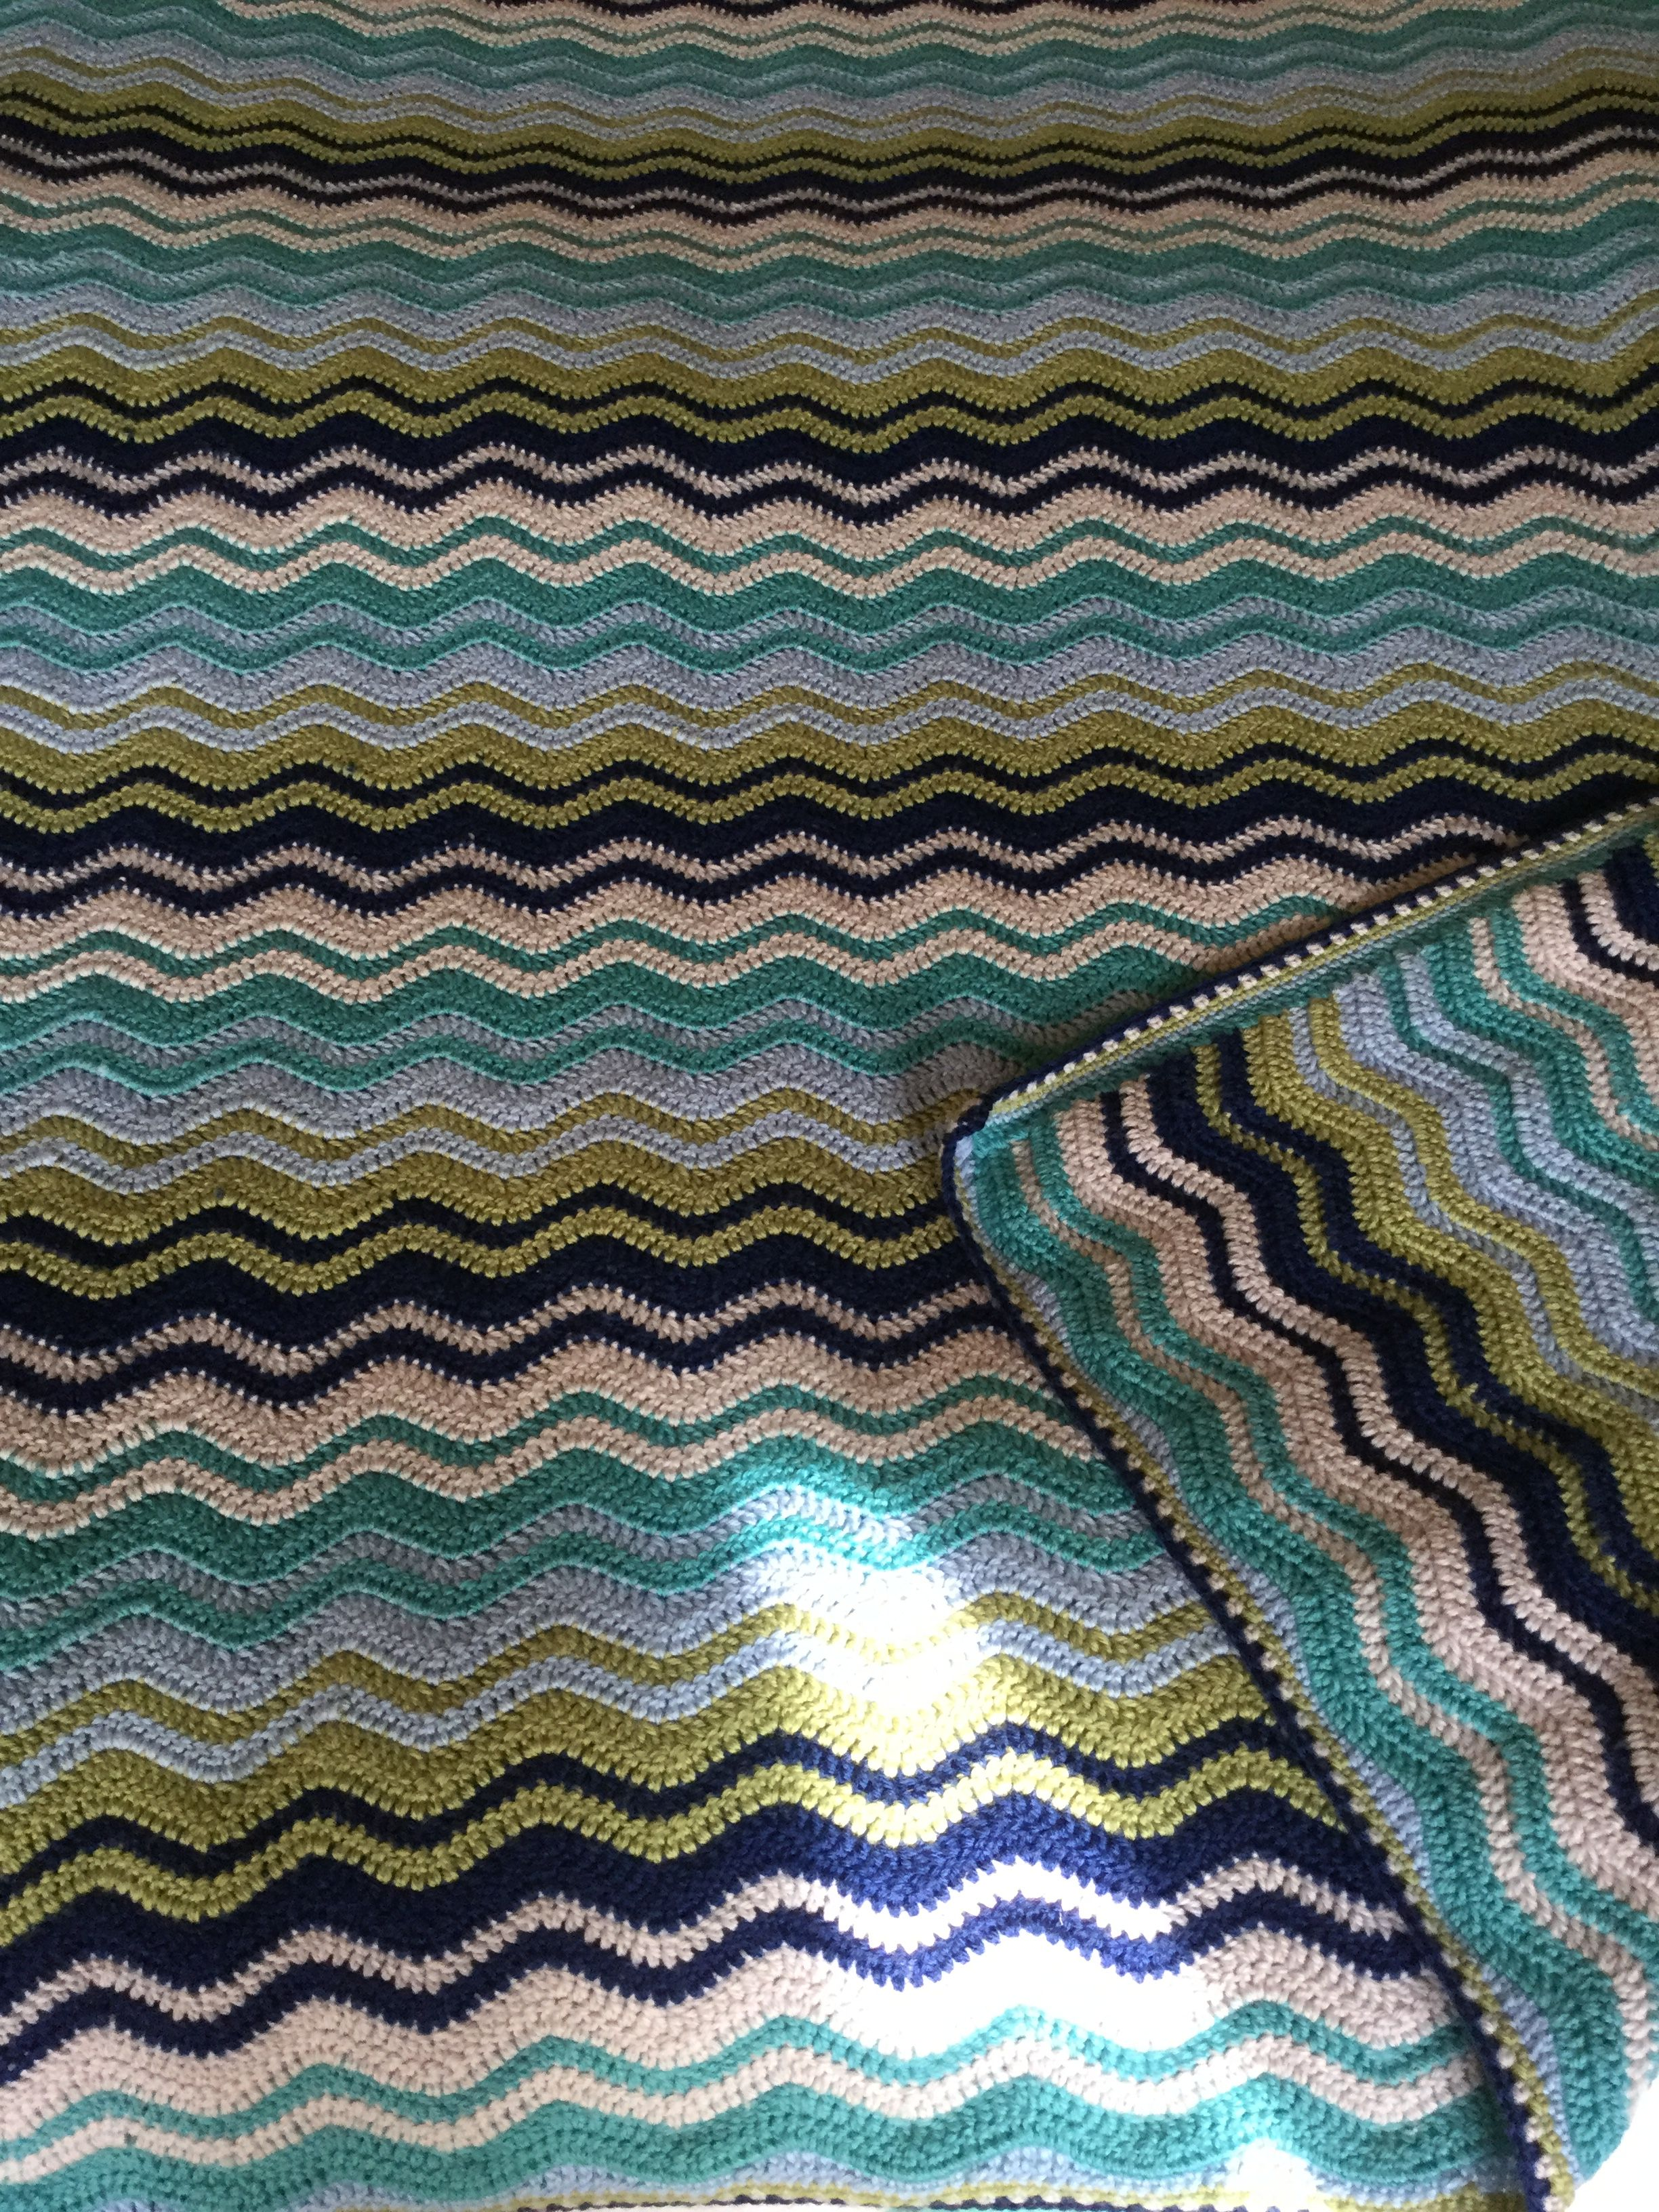 Interlocking Ripple Blanket For Charlie S Bed Pattern From Lucy At Attic 24 By Ondine 2015 Blanket Crochet Pattern